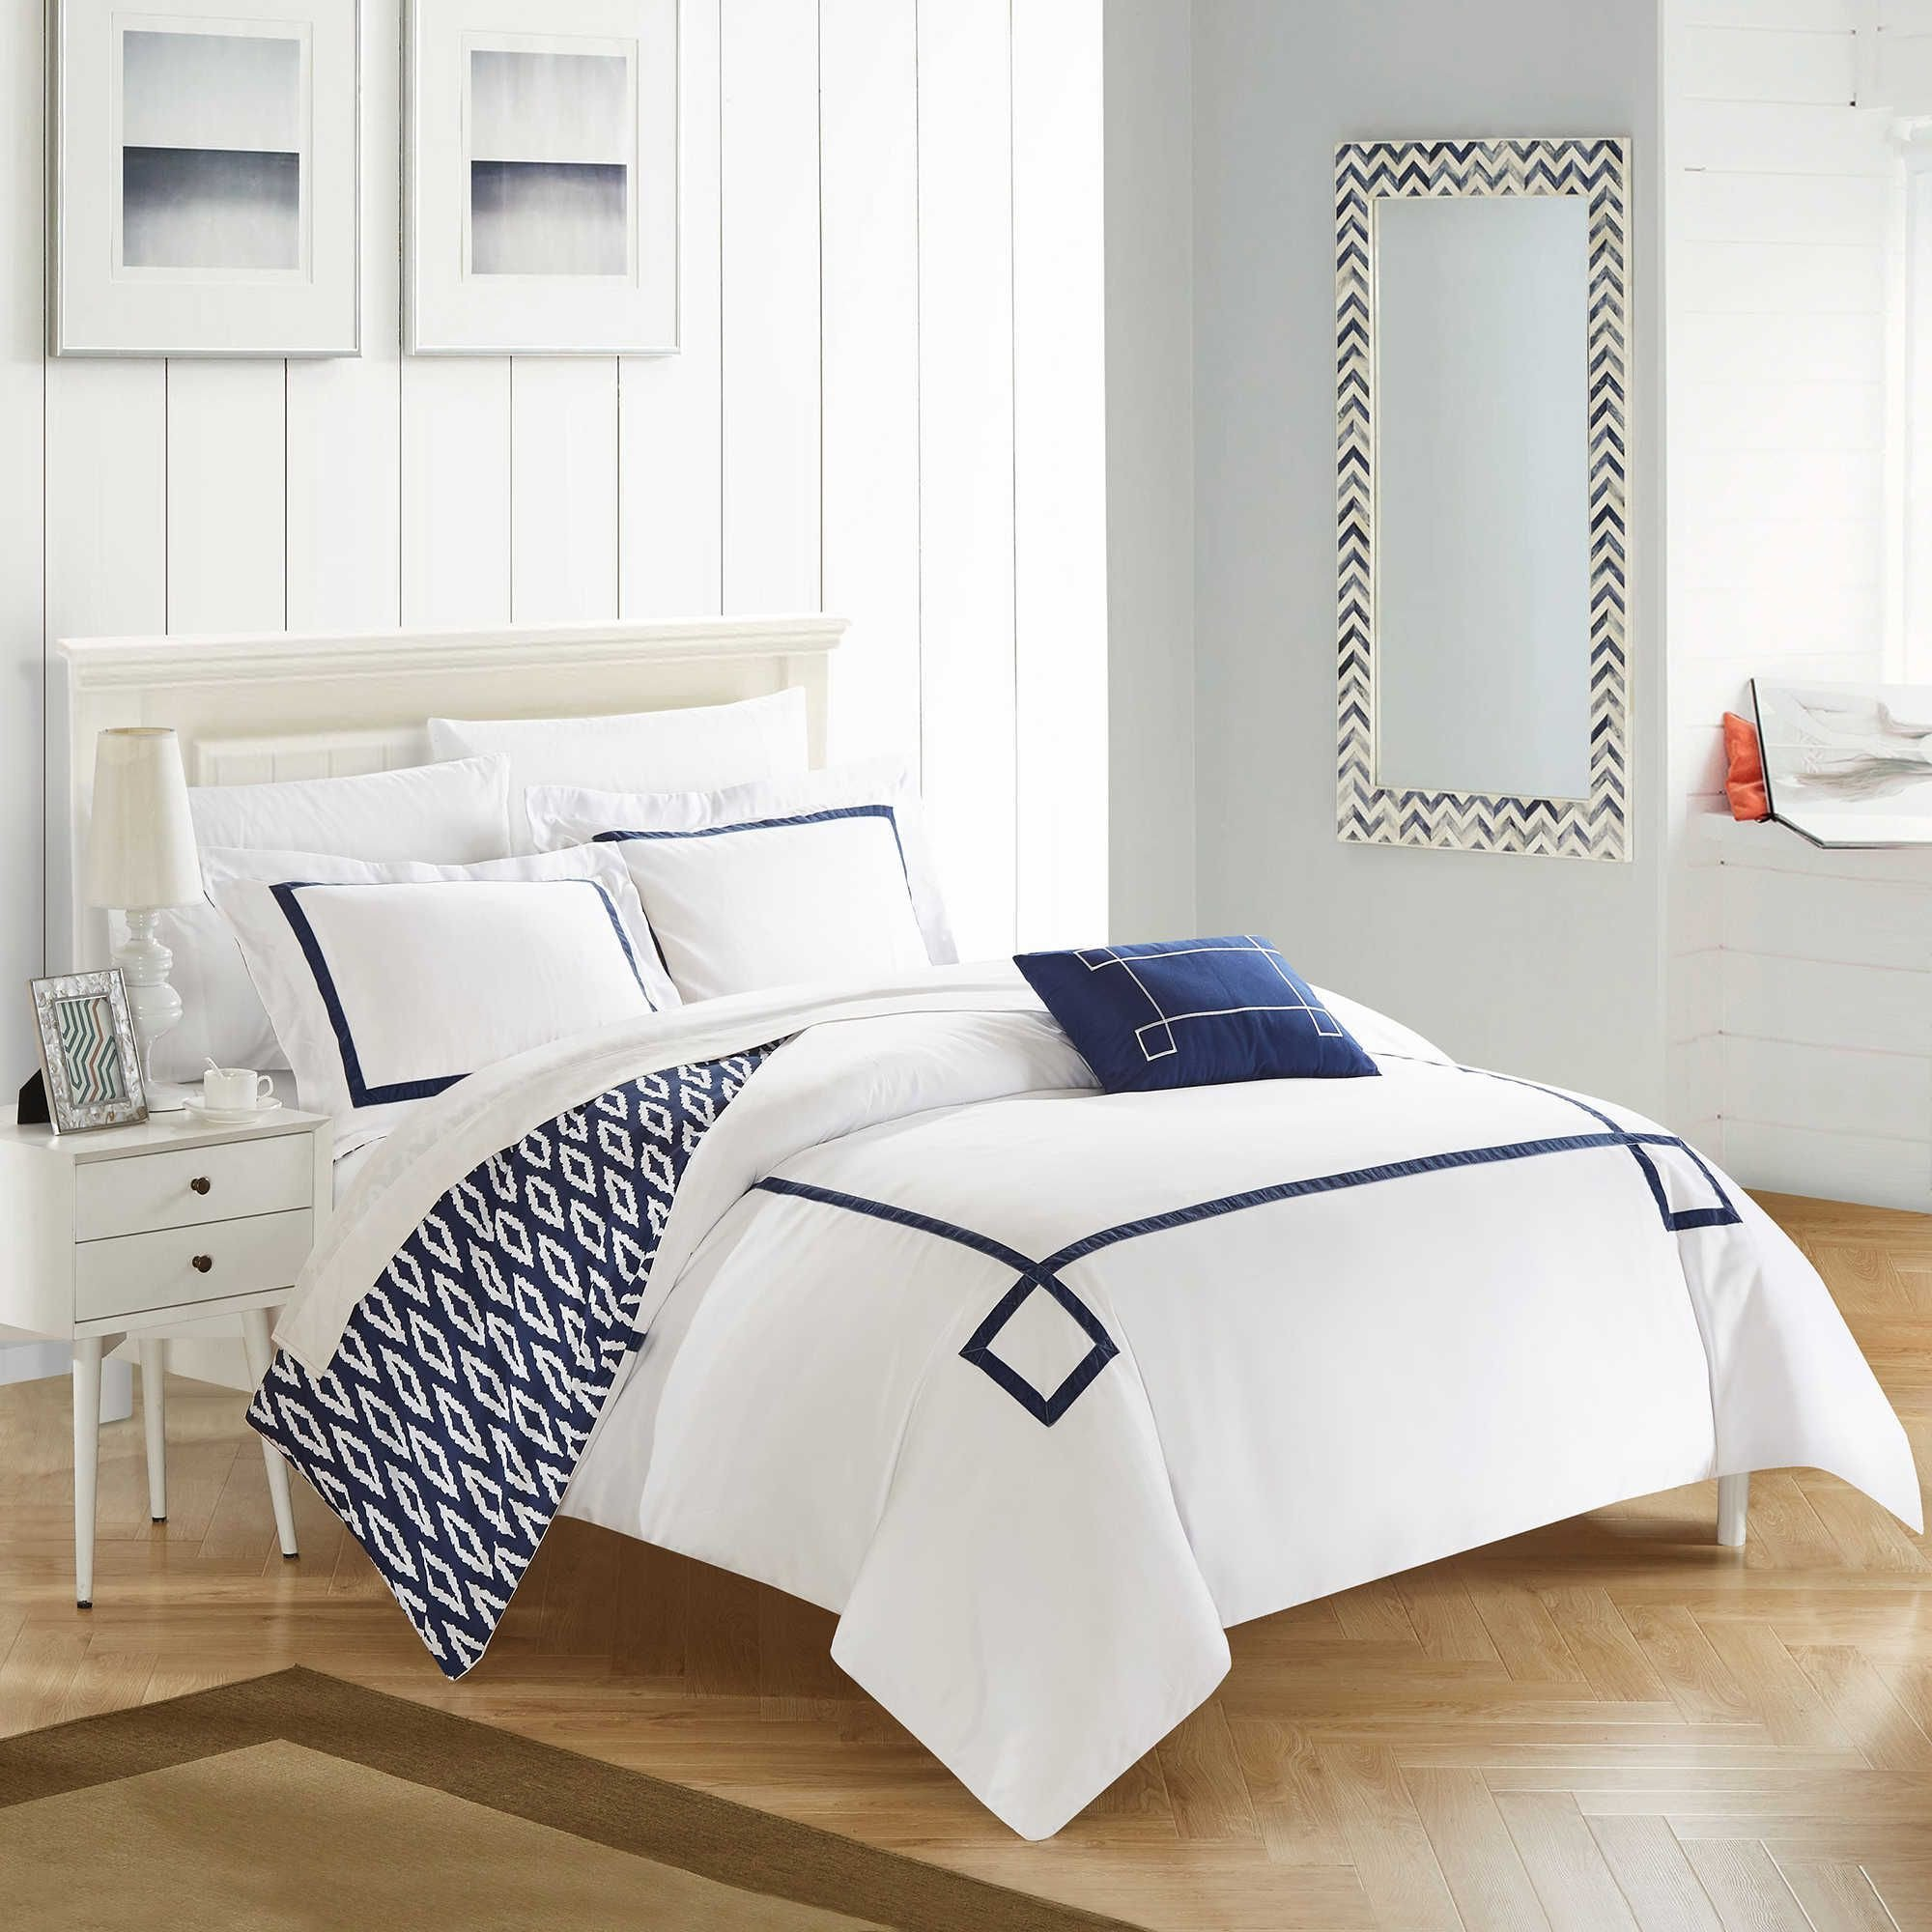 Cheap Bedroom Comforter Set Beautiful the 10 Best Places to Buy Bedding In 2020